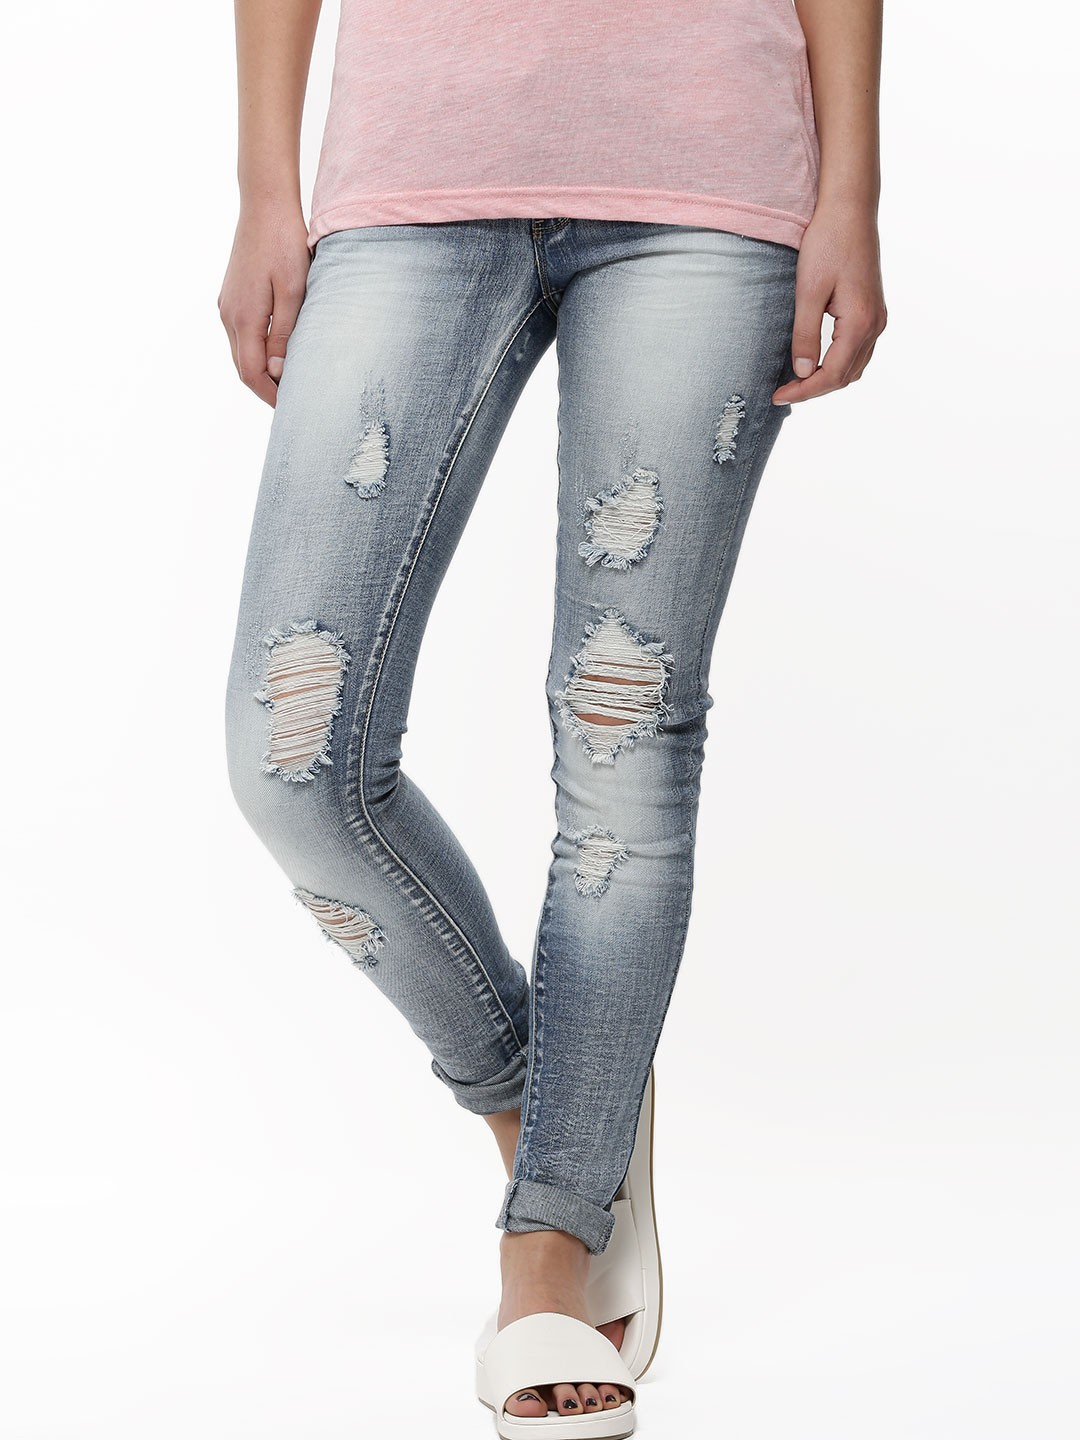 Buy ONLY Ripped Skinny Jeans For Women - Women's Blue Ripped Jeans ...